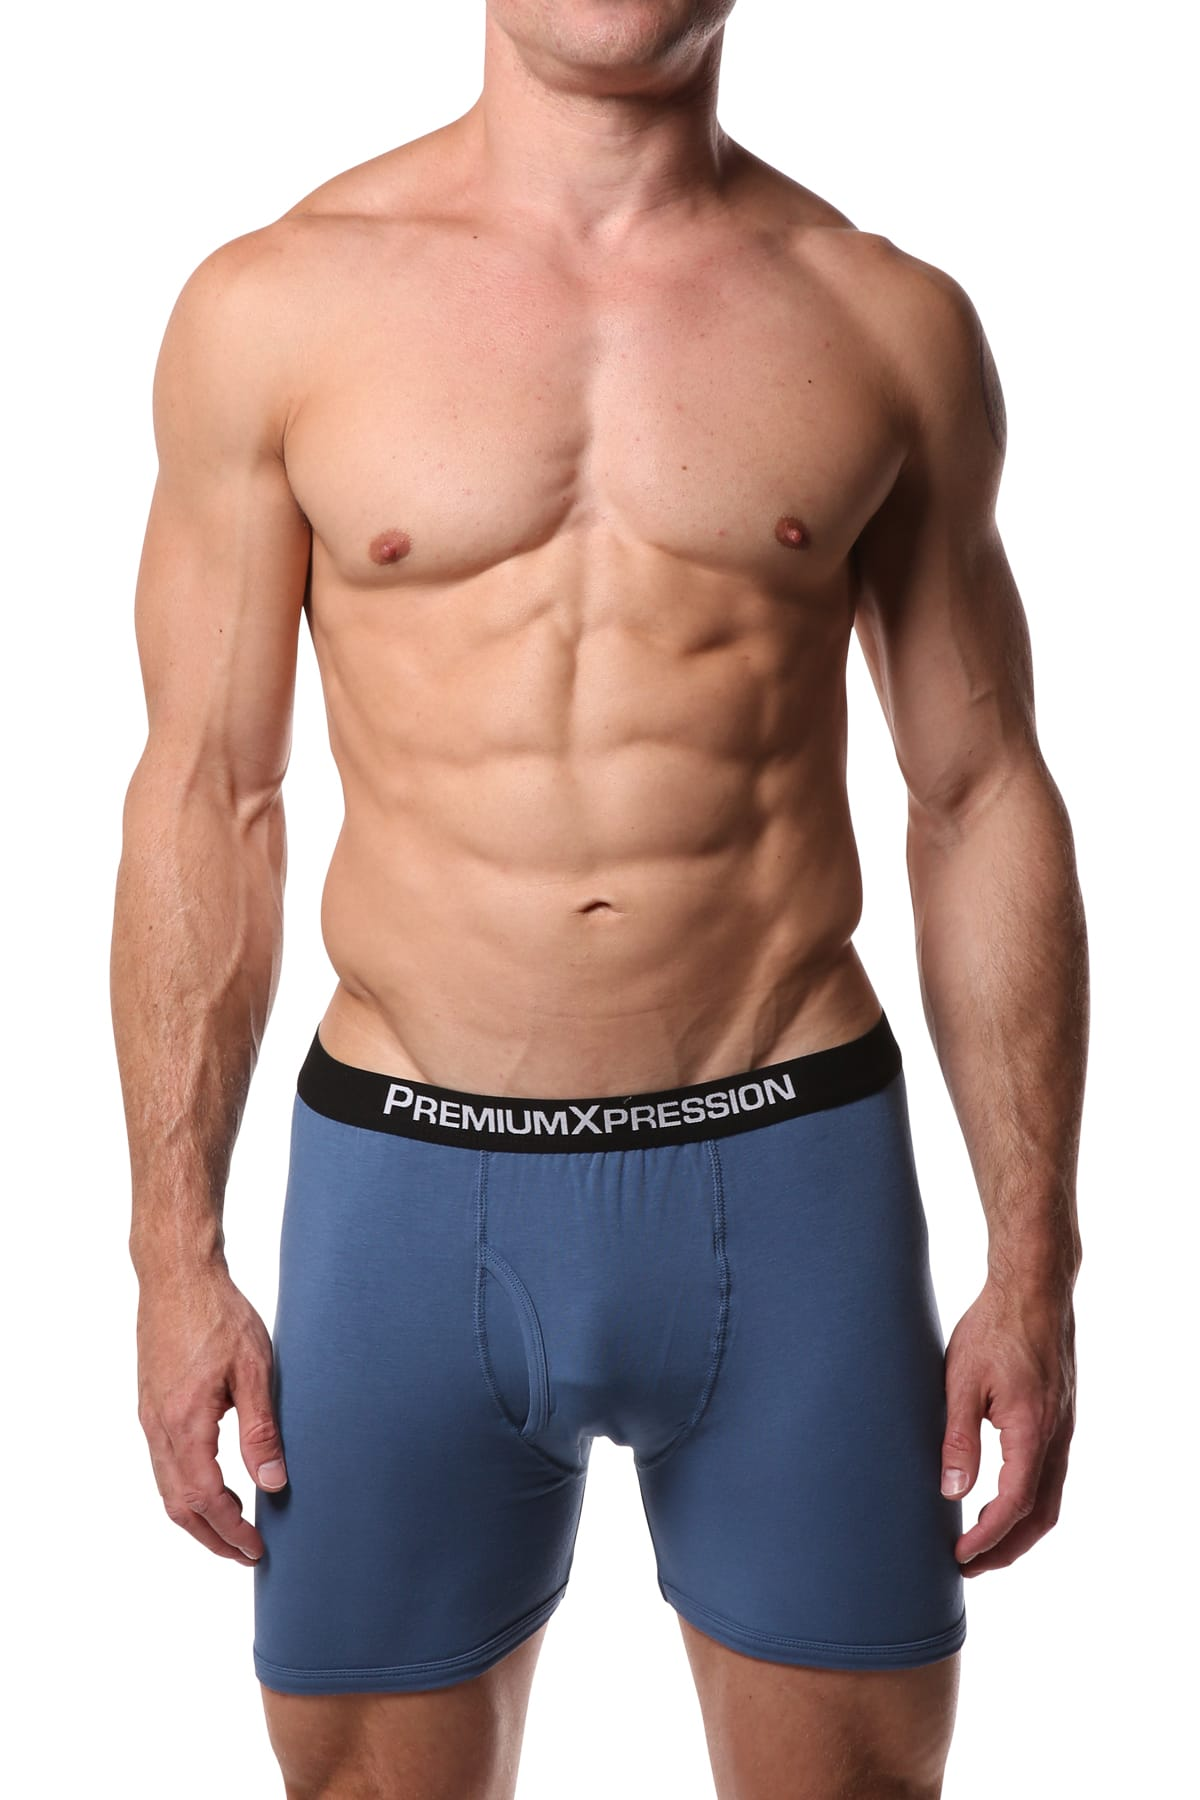 Premium Xpression Lake-Blue Boxer Brief